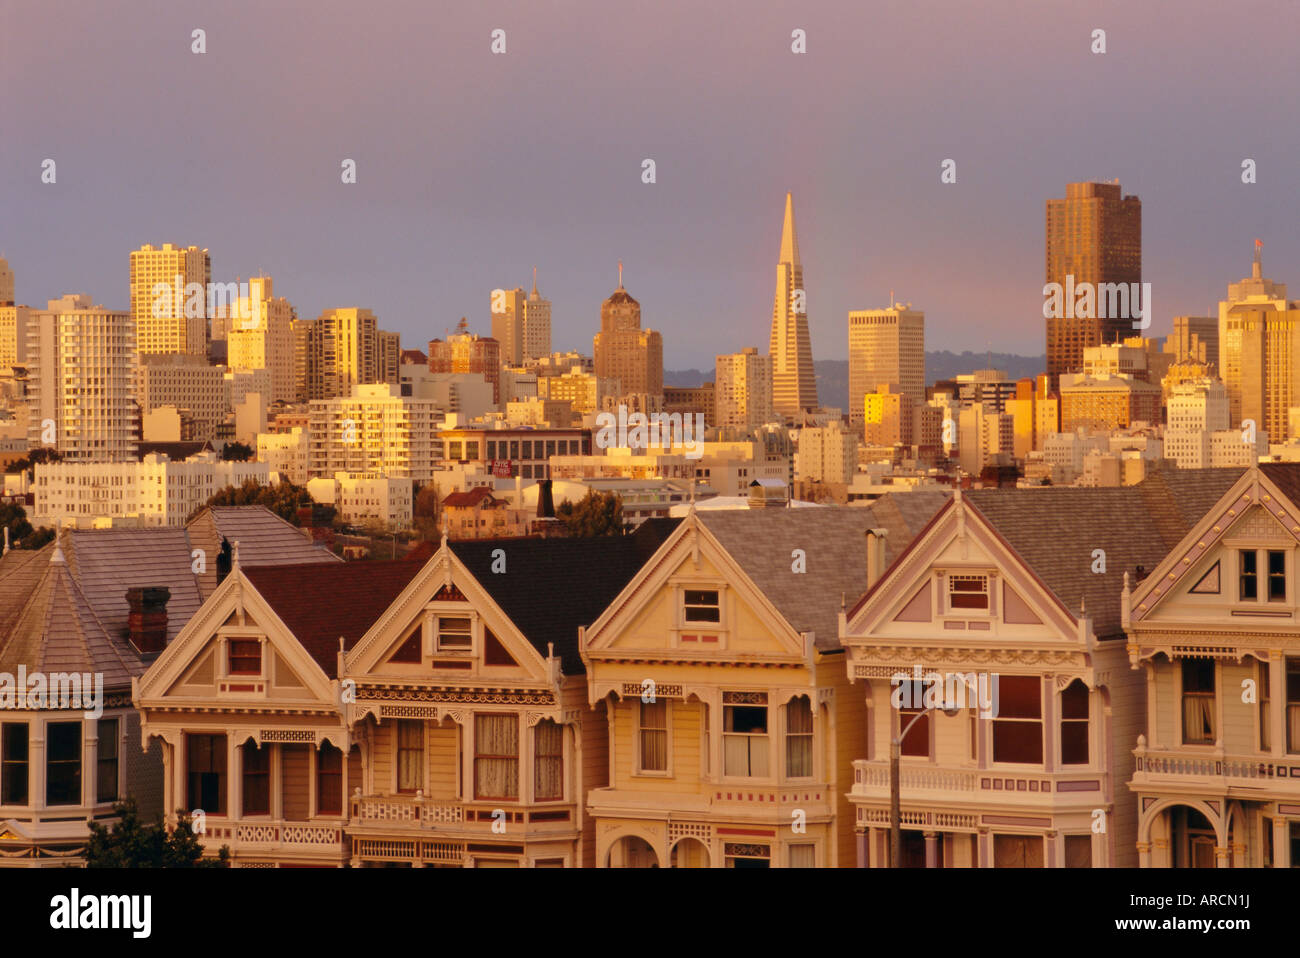 The 'Painted Ladies', Victorian houses on Alamo Square, San Francisco, California, USA - Stock Image